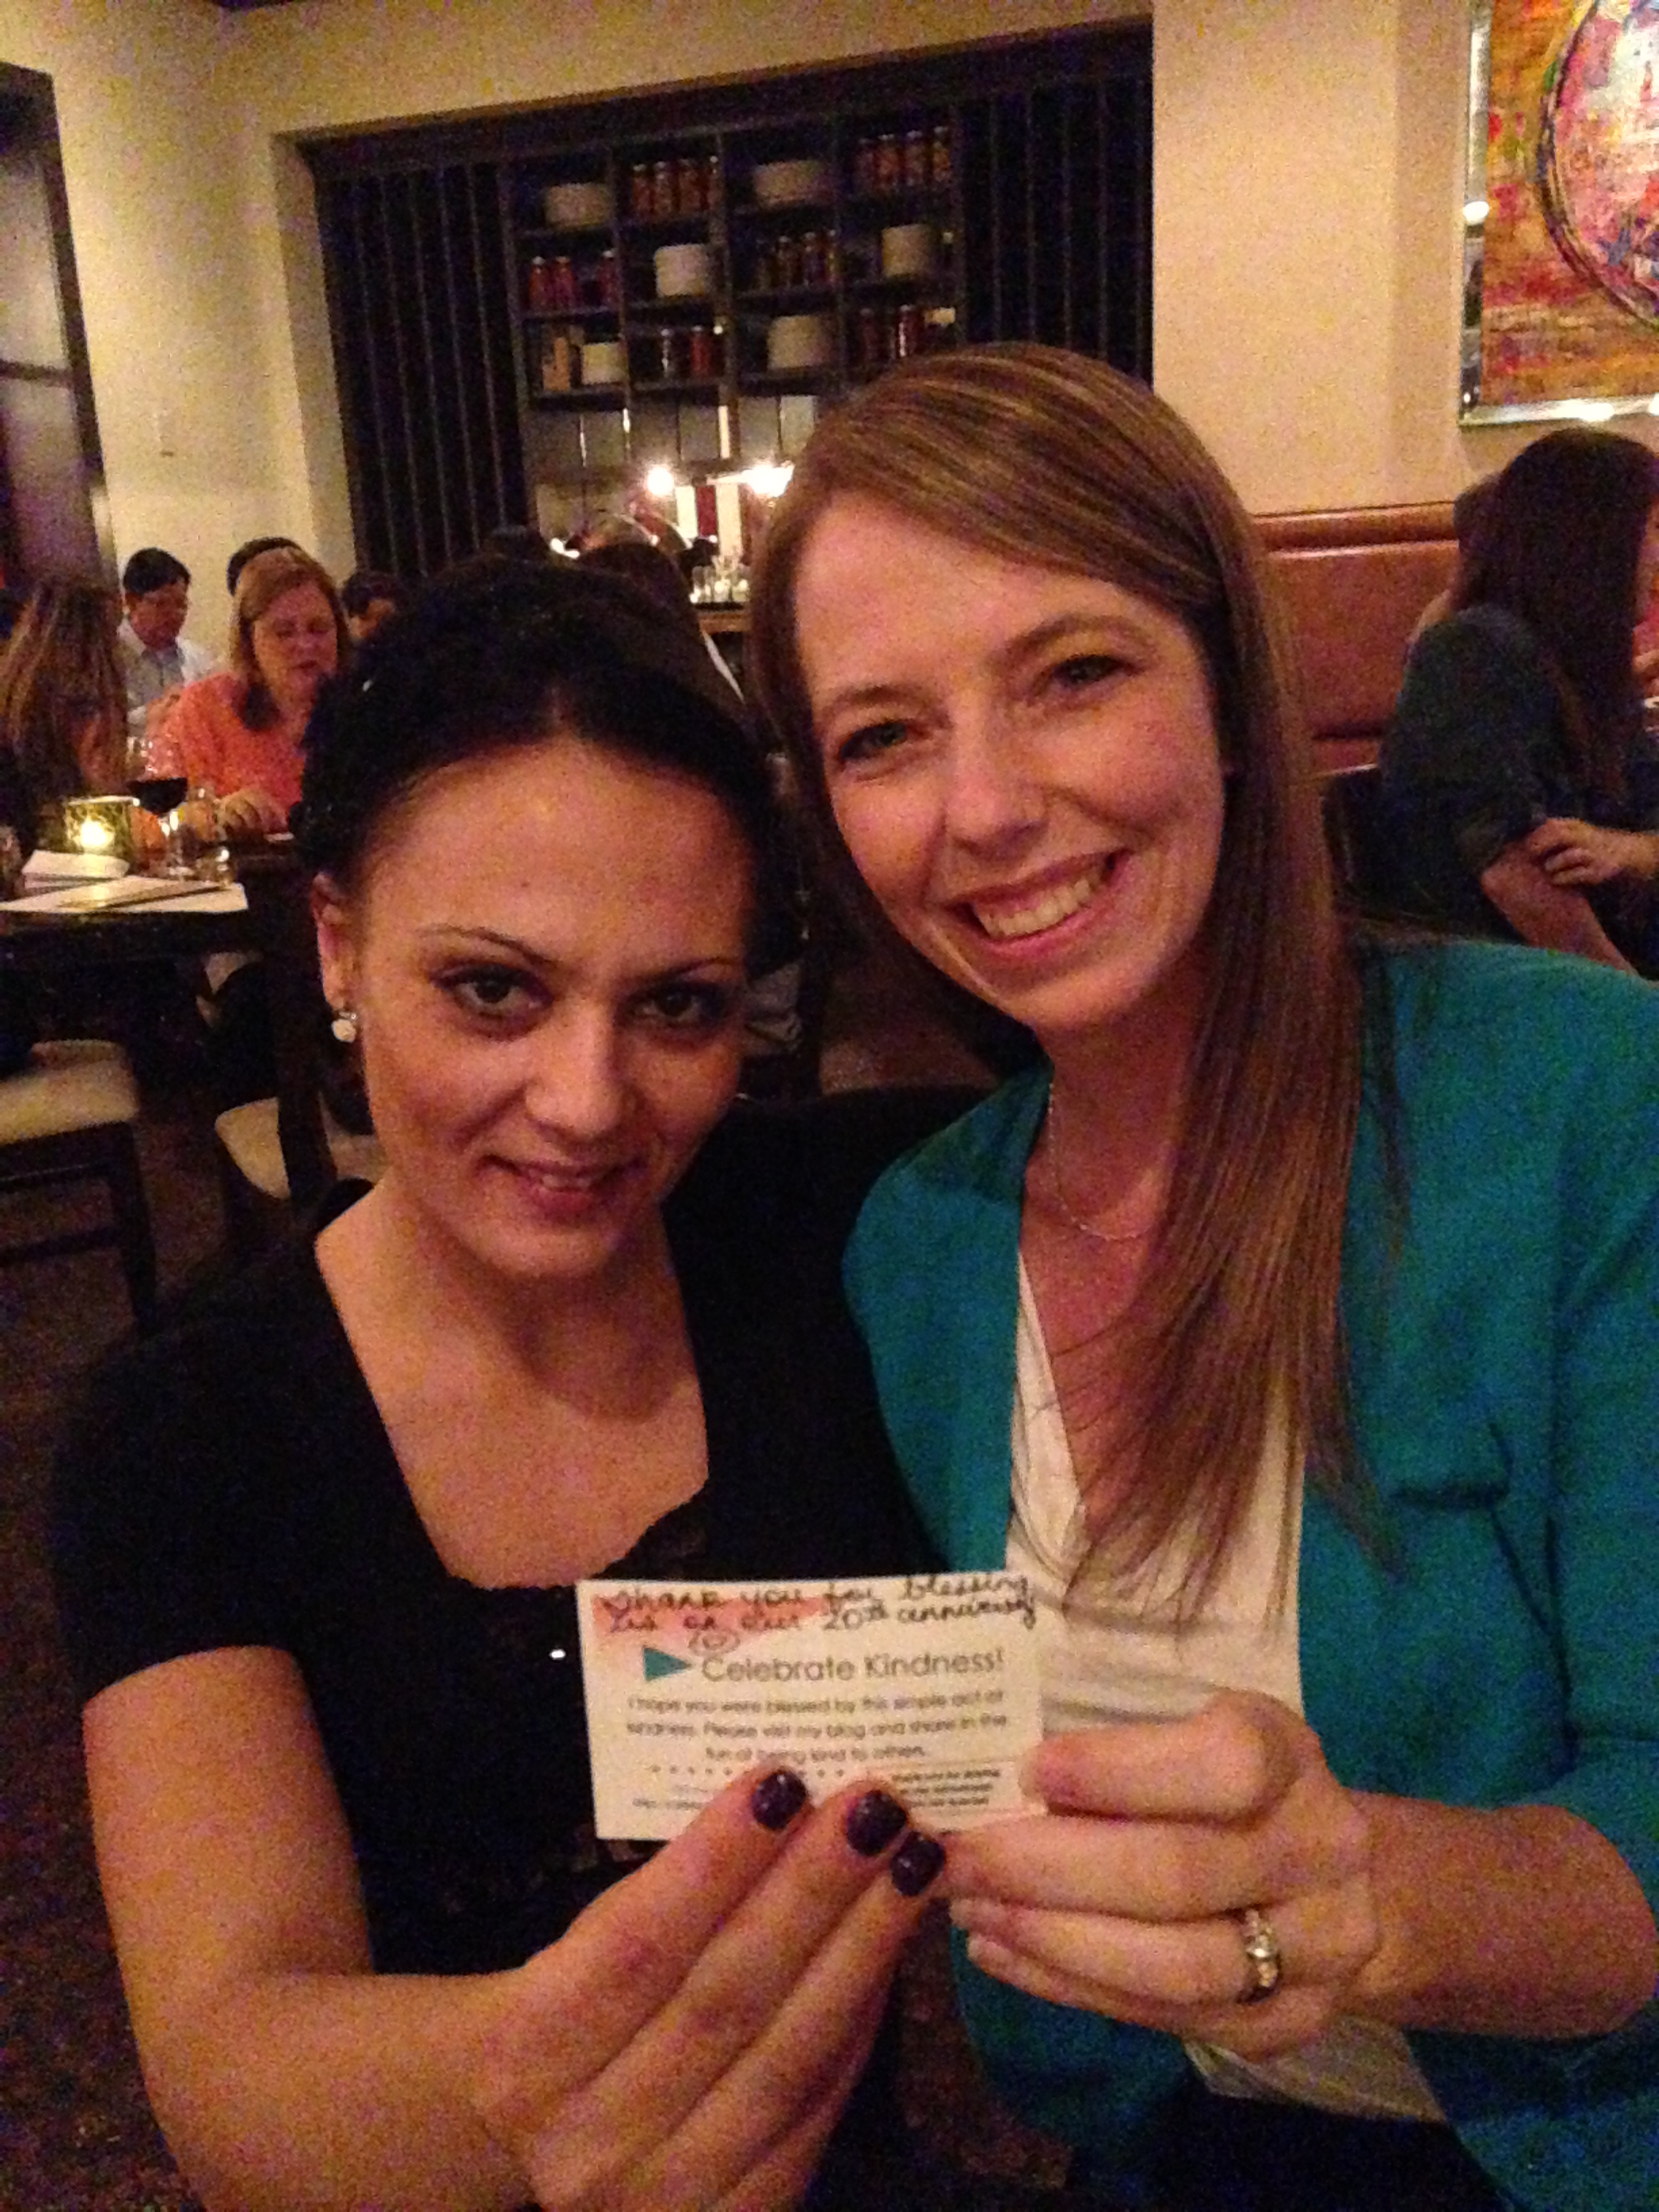 Me and our waitress, Milena, with my RAK card.